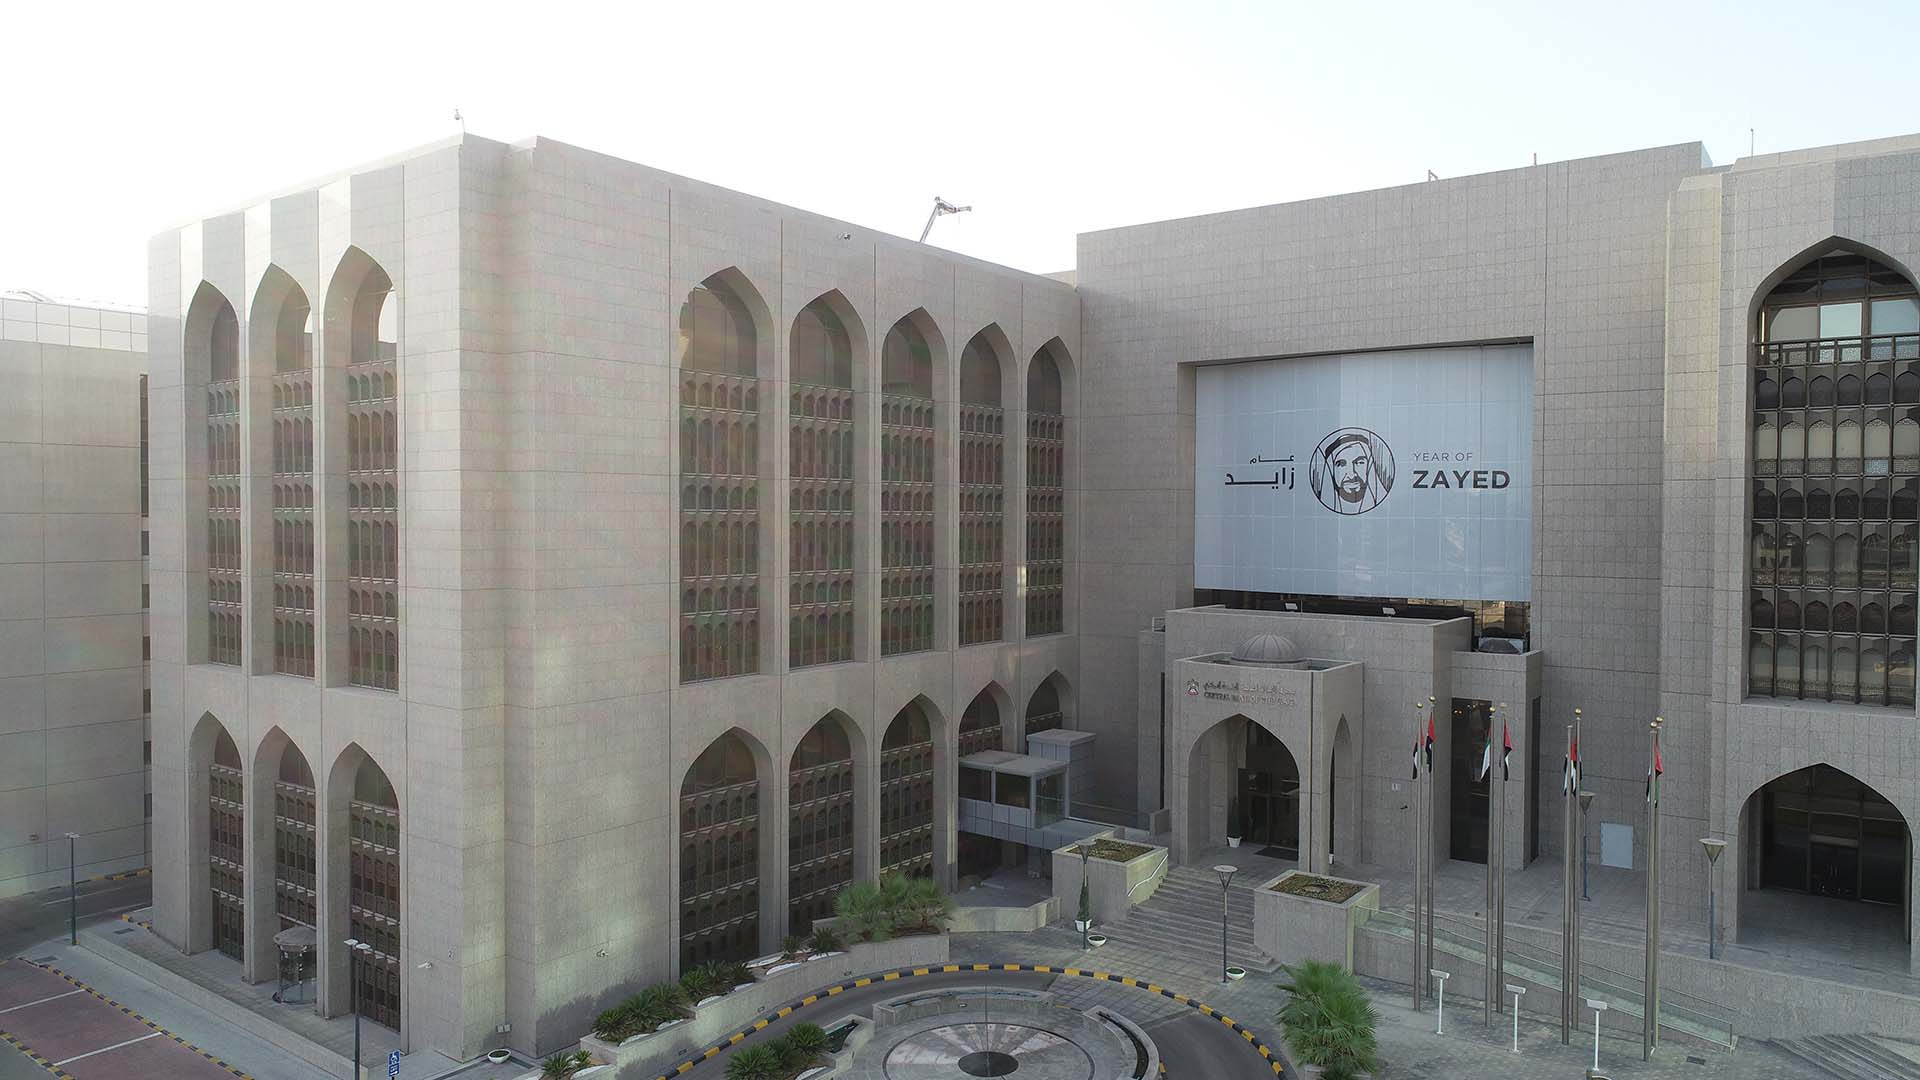 UAE and Egypt Central Banks sign MoU to strengthen supervisory cooperation